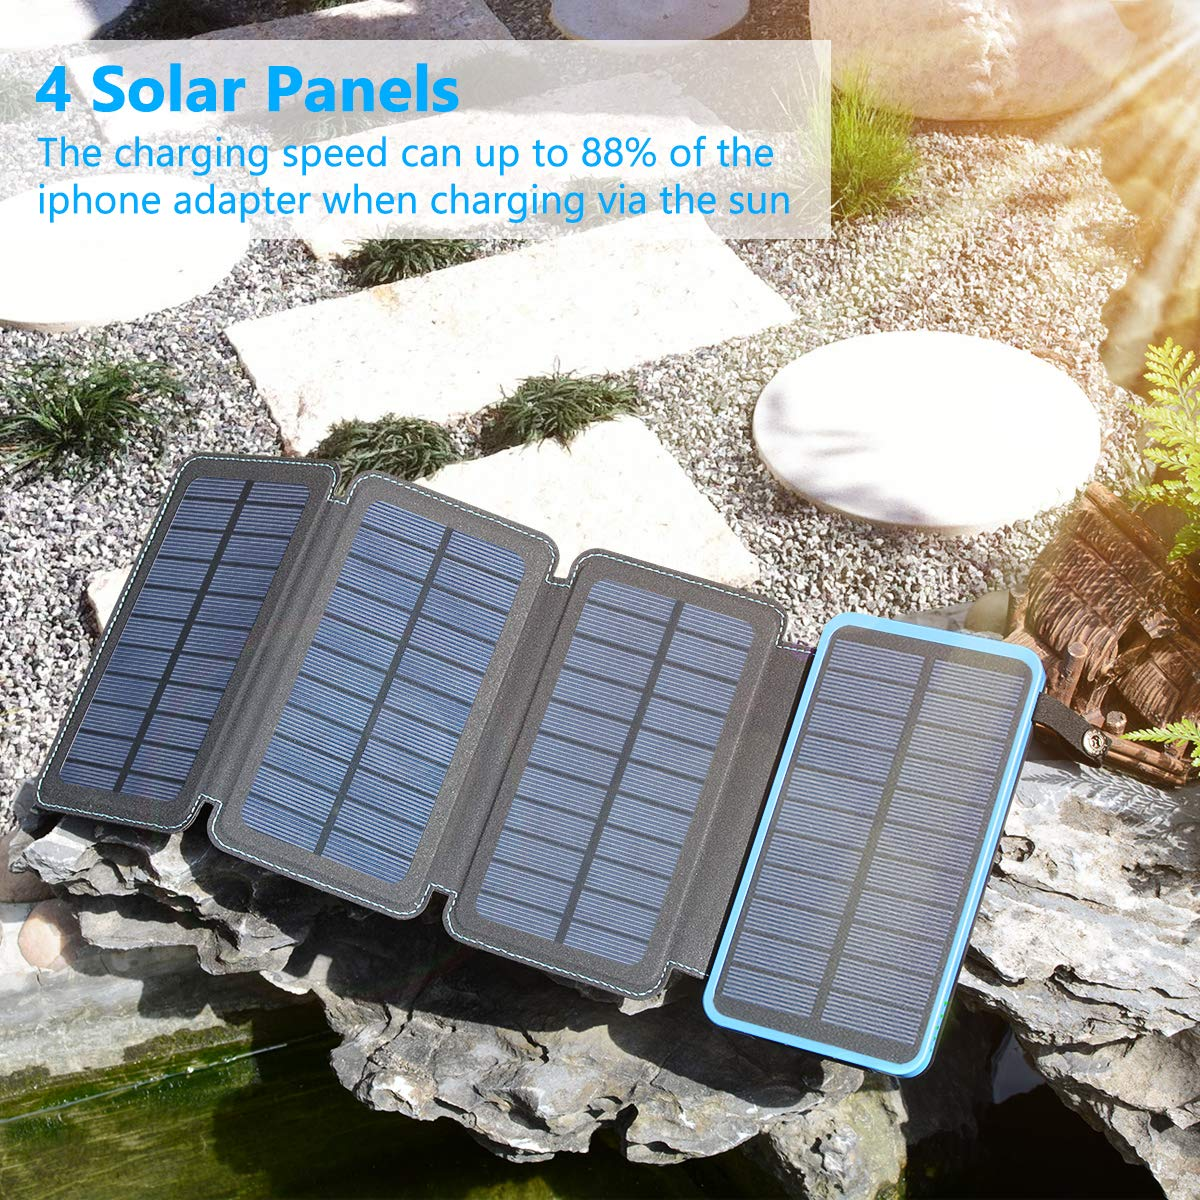 FEELLE Solar Power Bank with 4 Solar Panels Outdoor Waterproof Solar Phone Chargers with Dual 2.1A USB Ports for Smart Phone Solar Charger 25000mAh ect. Tablets Camera